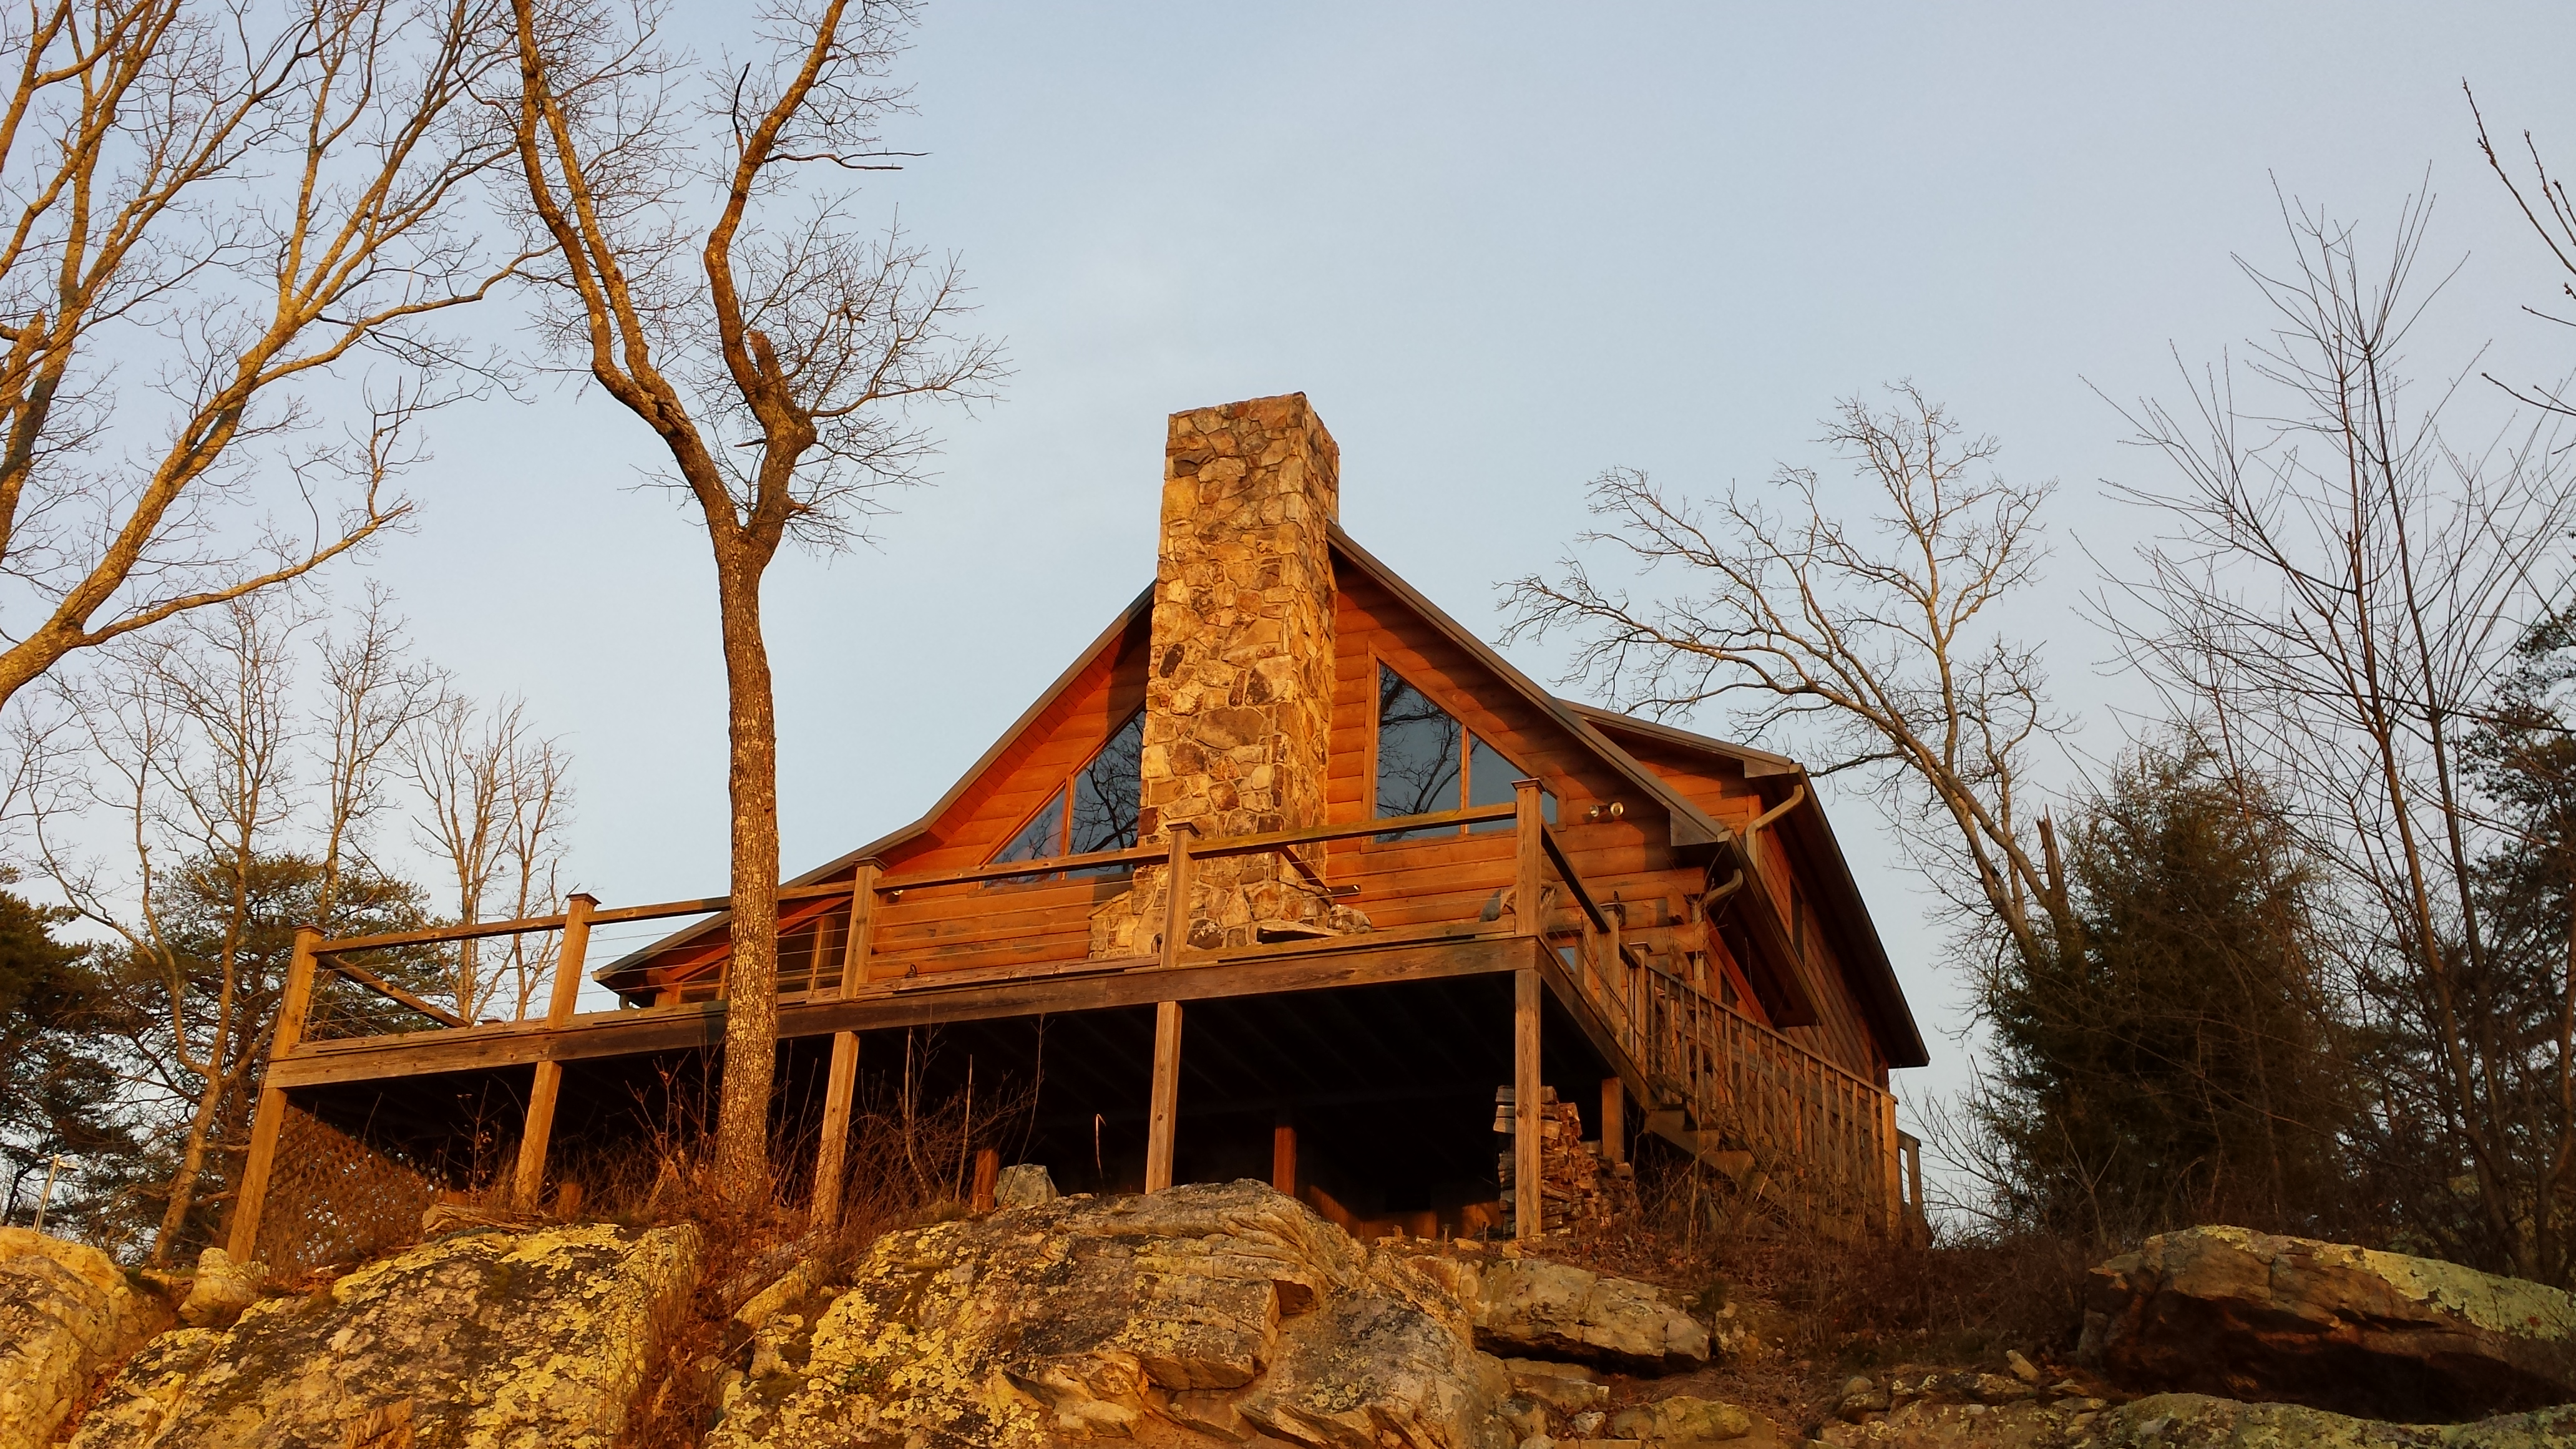 area luxury miles cabin beach end log ha the conservation rent from chattanooga image trails in vacation bed rentals property s cabins to for home downtown deal yards